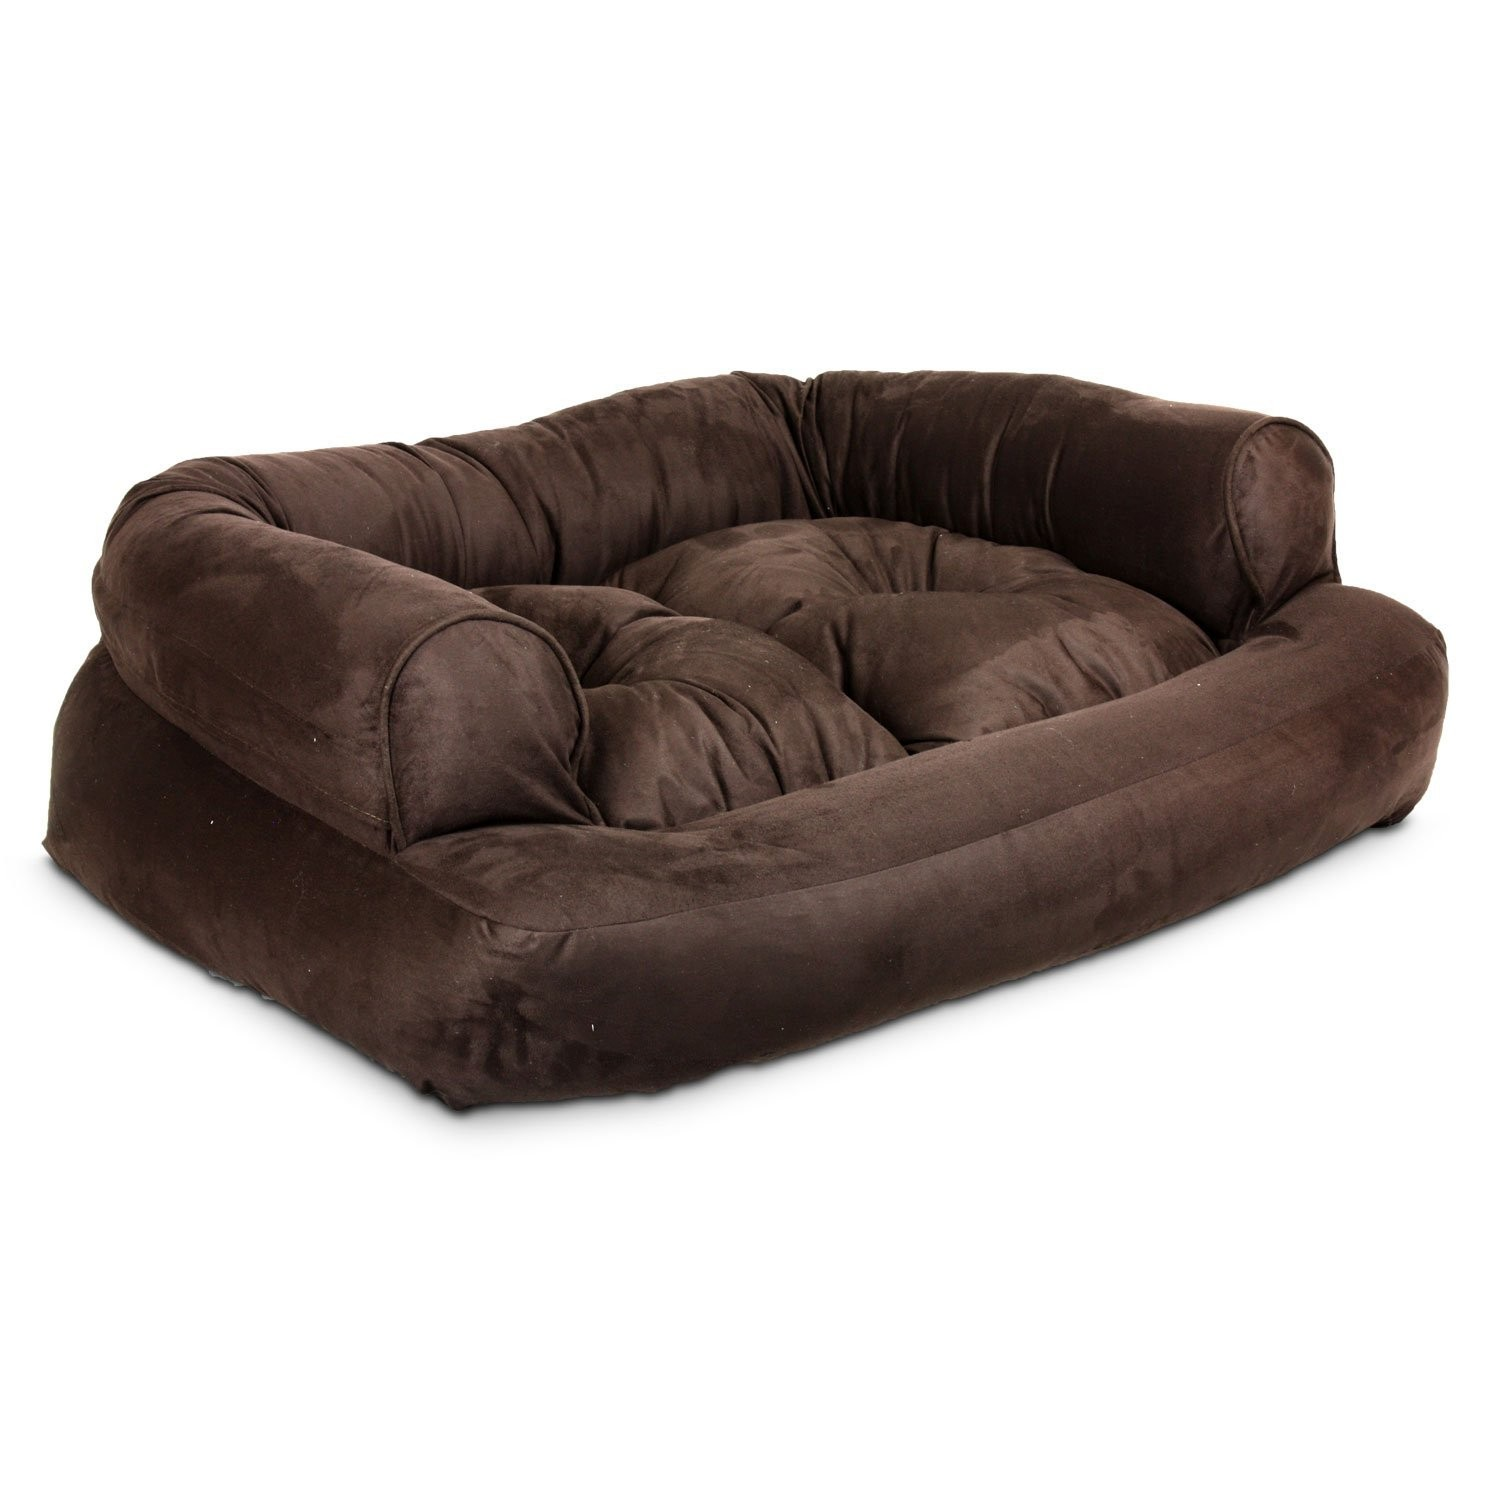 Snoozer Overstuffed sofa Pet Bed Unique Amazon Snoozer Overstuffed Luxury Pet sofa X Hot Architecture